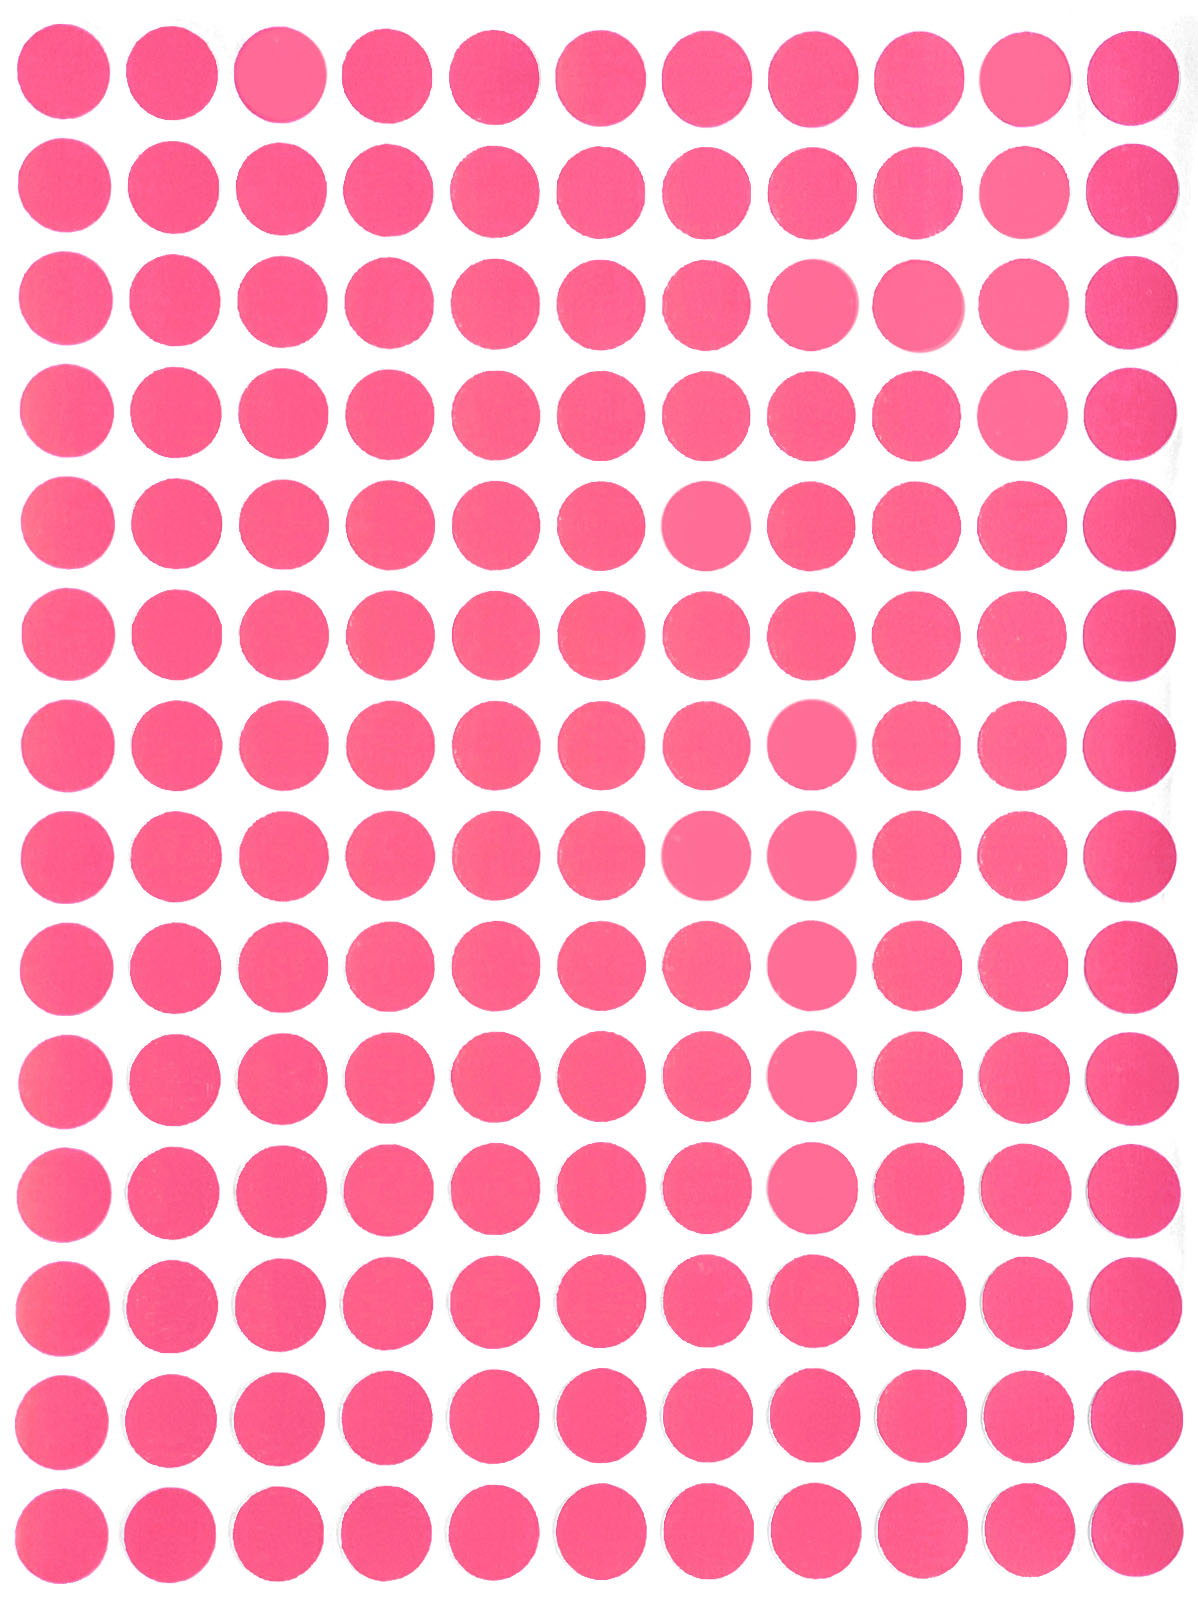 Colour Code Dots Round Stickers Sticky ID Labels 1//2 Inch 100 Light Pink 13mm